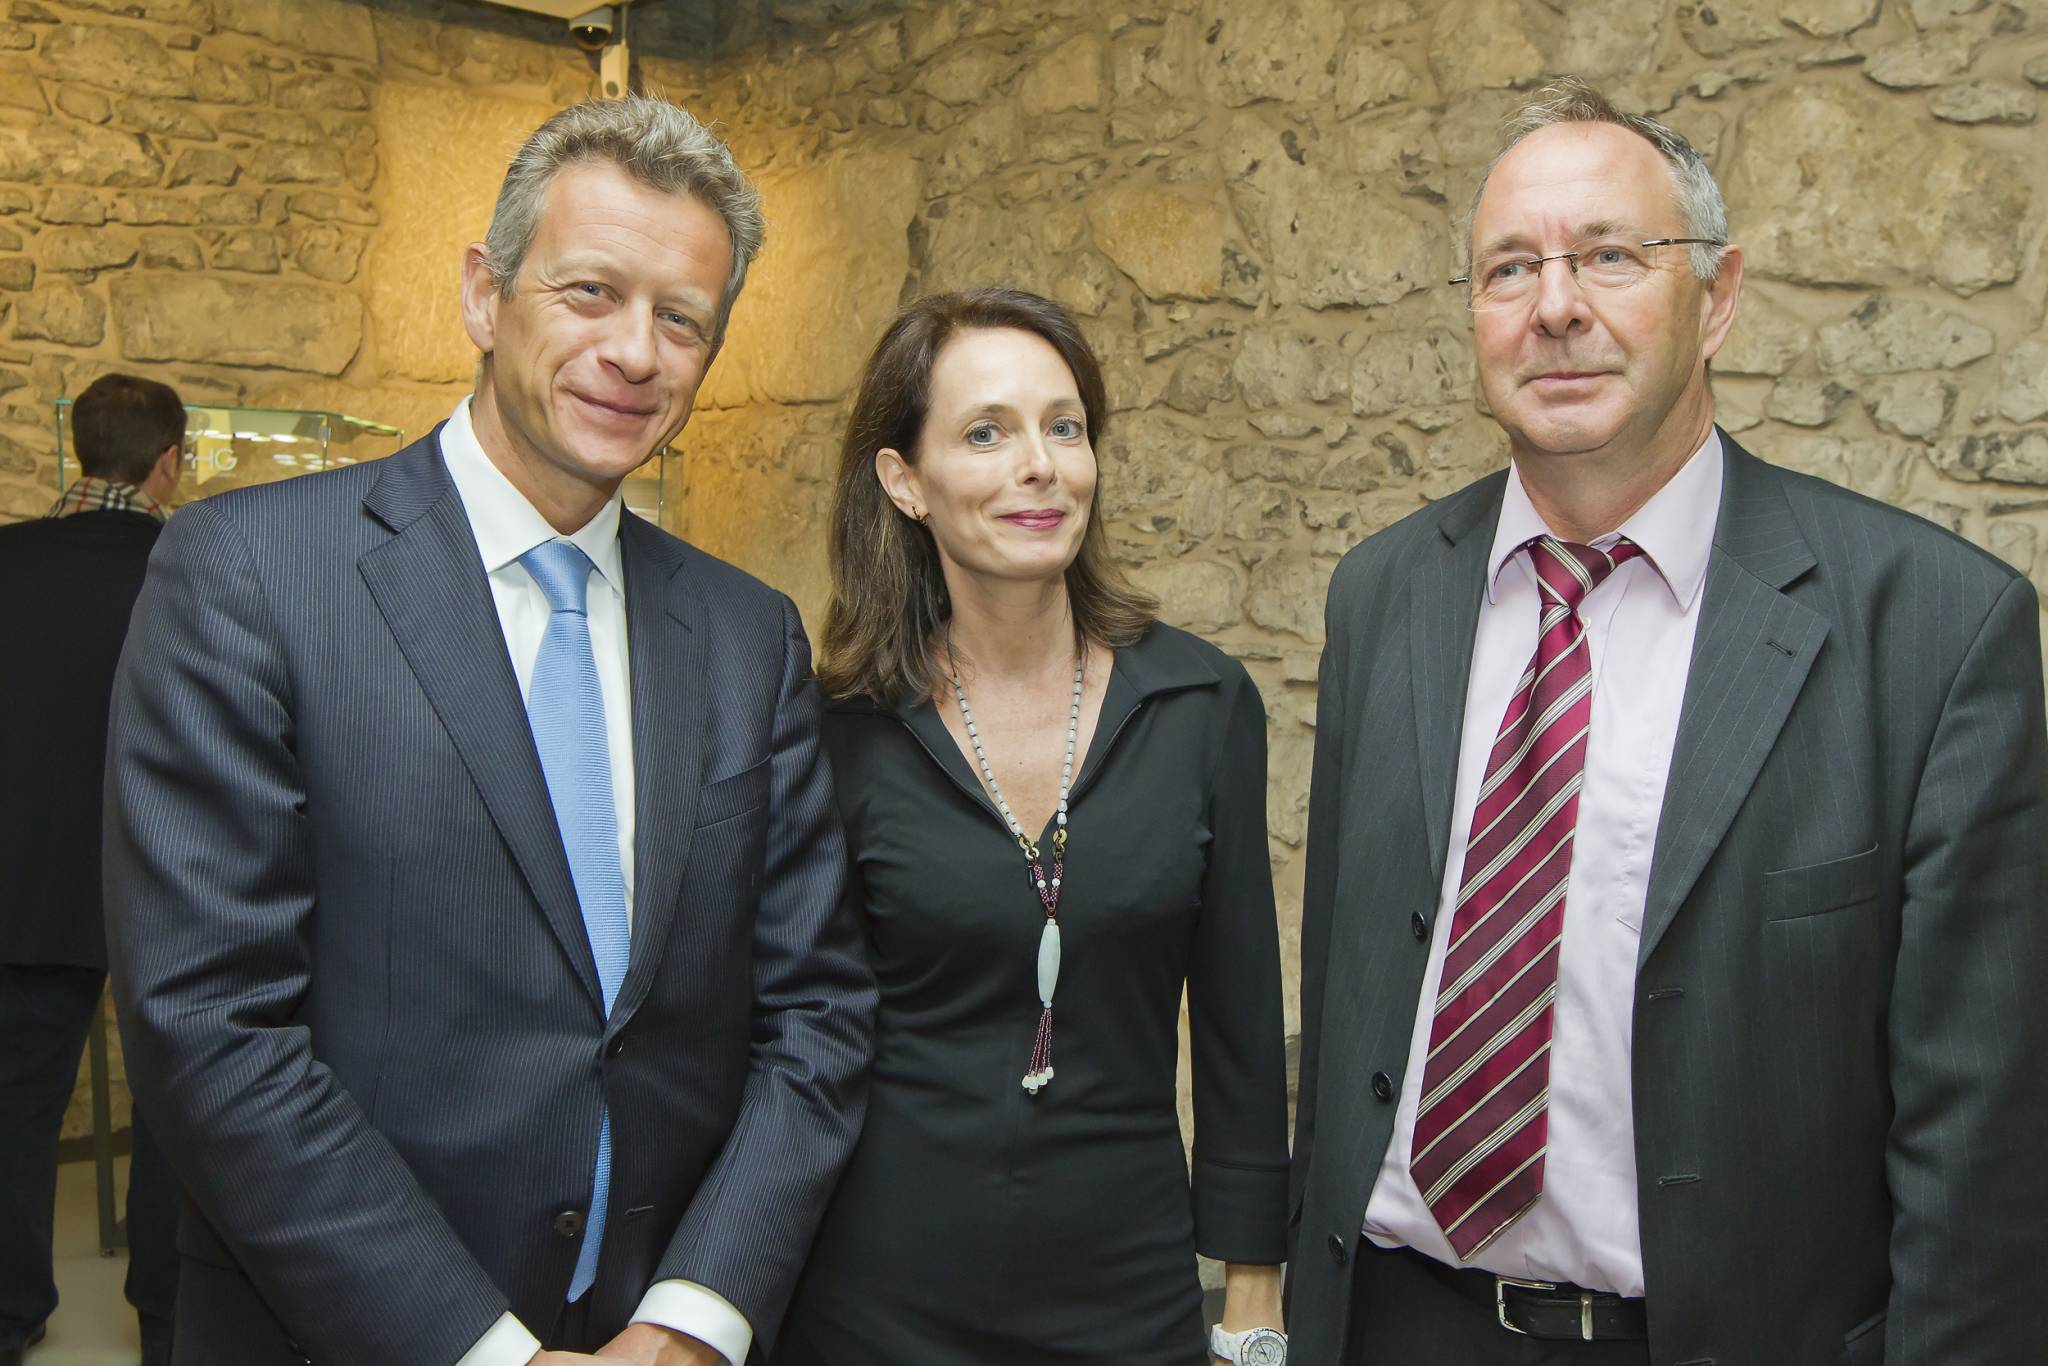 Benoît Clivio, Director of Banque Privée Edmond de Rothschild (BPER) and Valérie Boscat, Communication director of BPER and Daniel Favre, President of TimeLab, November 8th, 2011